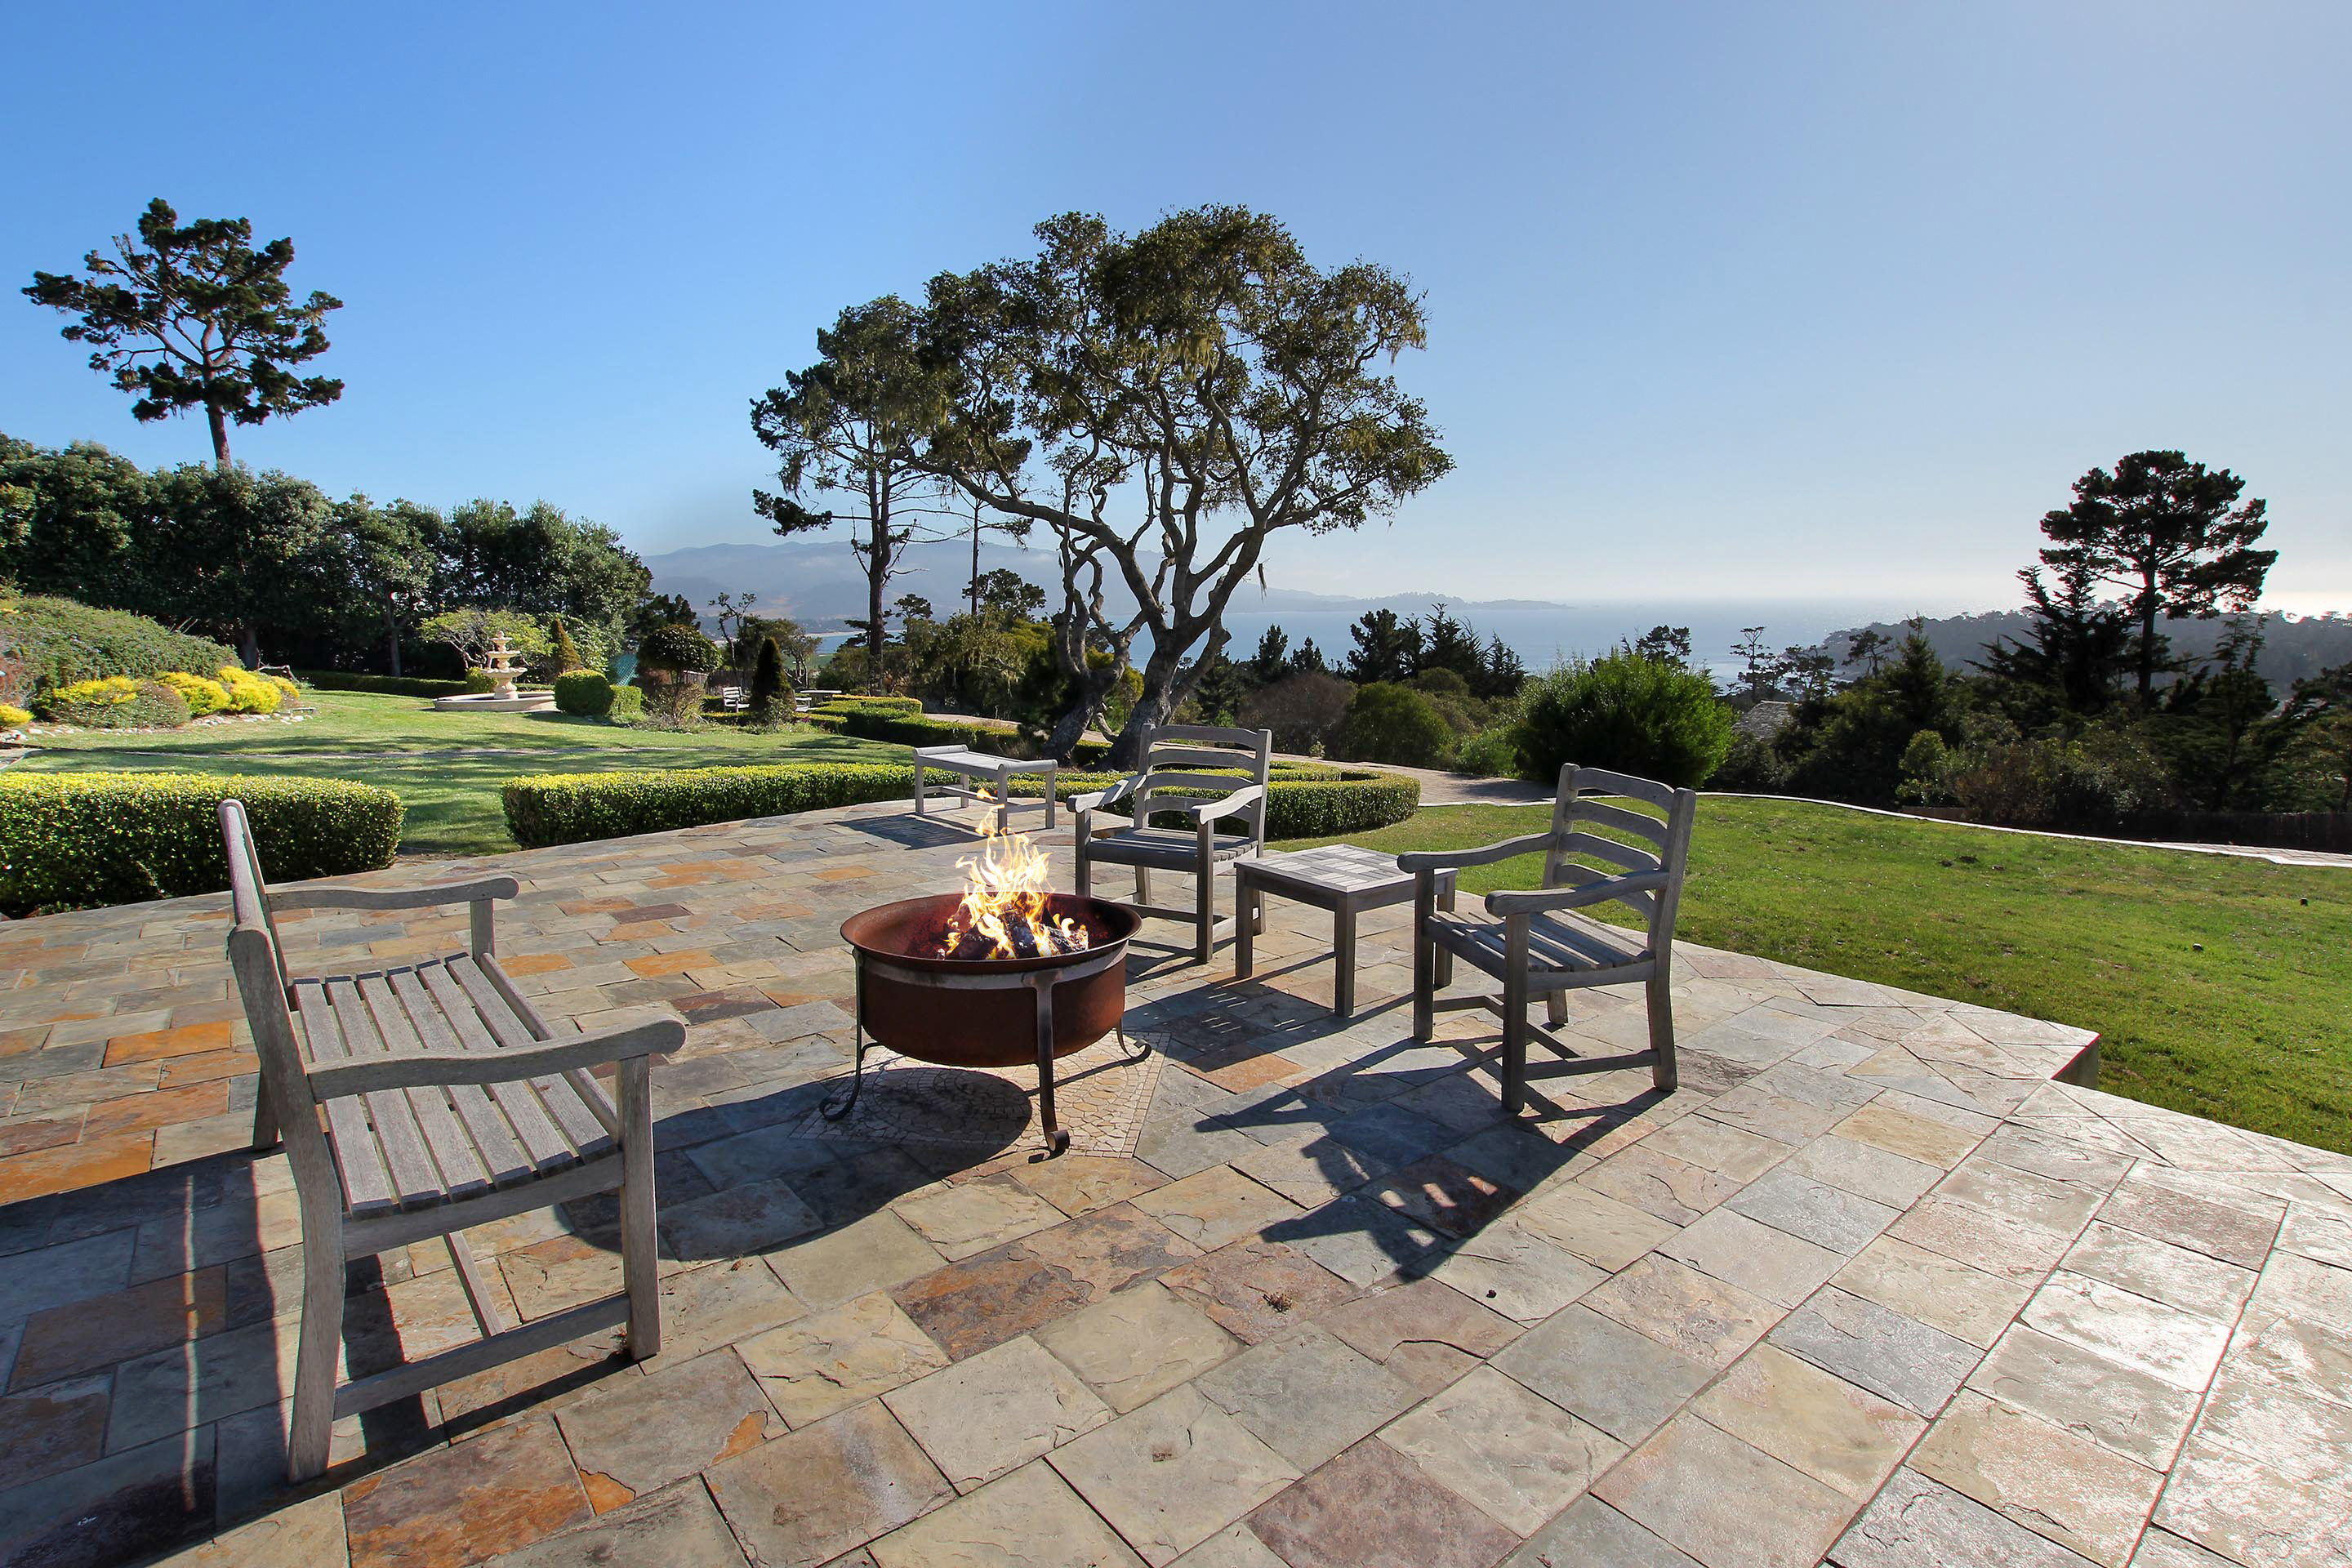 Pebble Beach CA Vacation Rental Welcome to Pebble